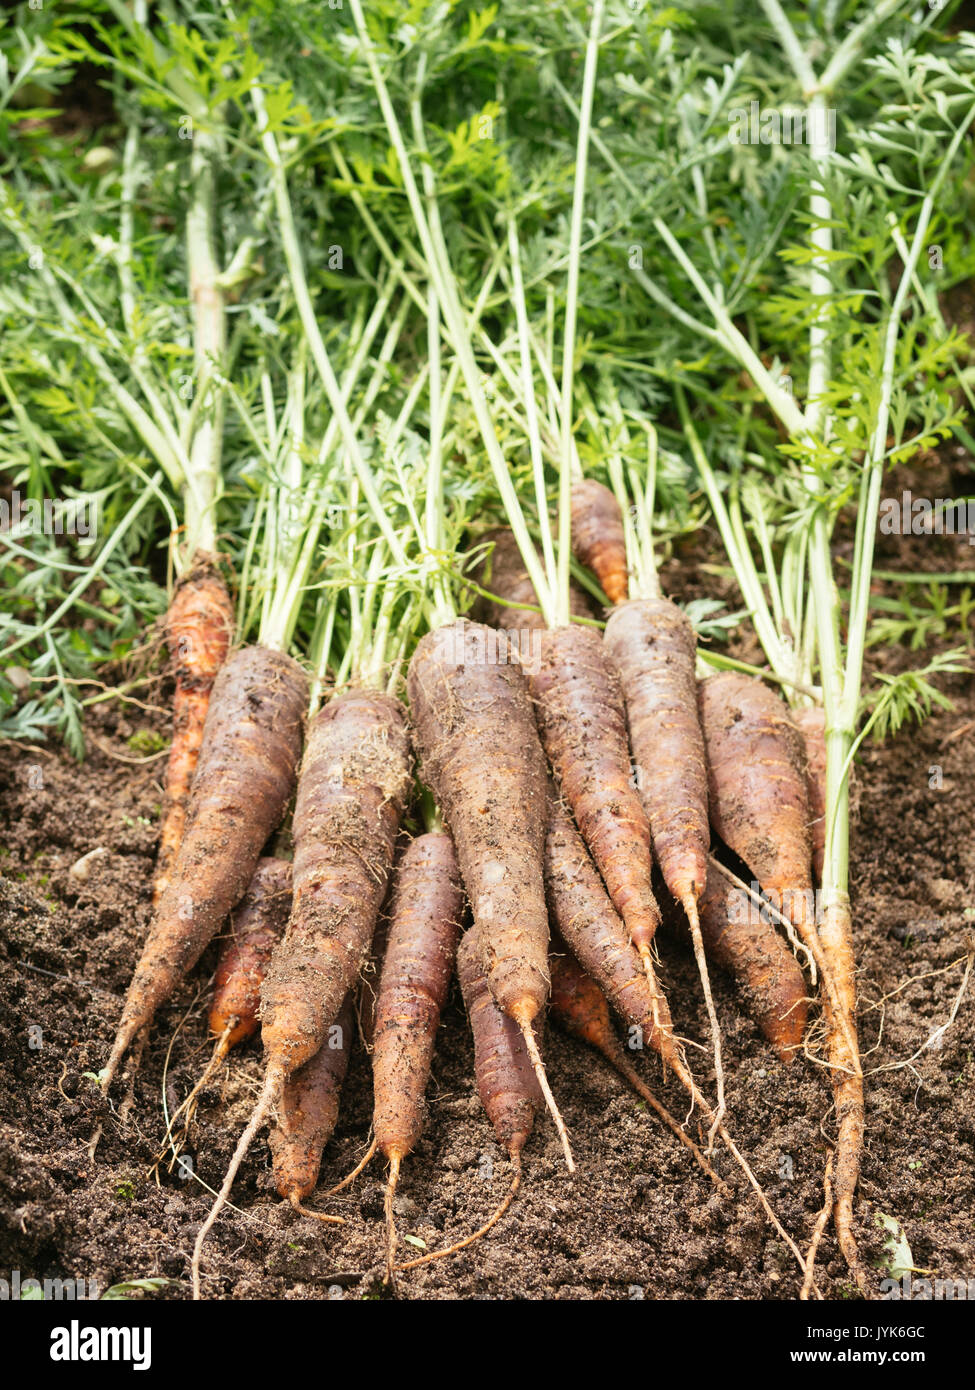 Freshly harvested organic purple carrots on soil - Stock Image